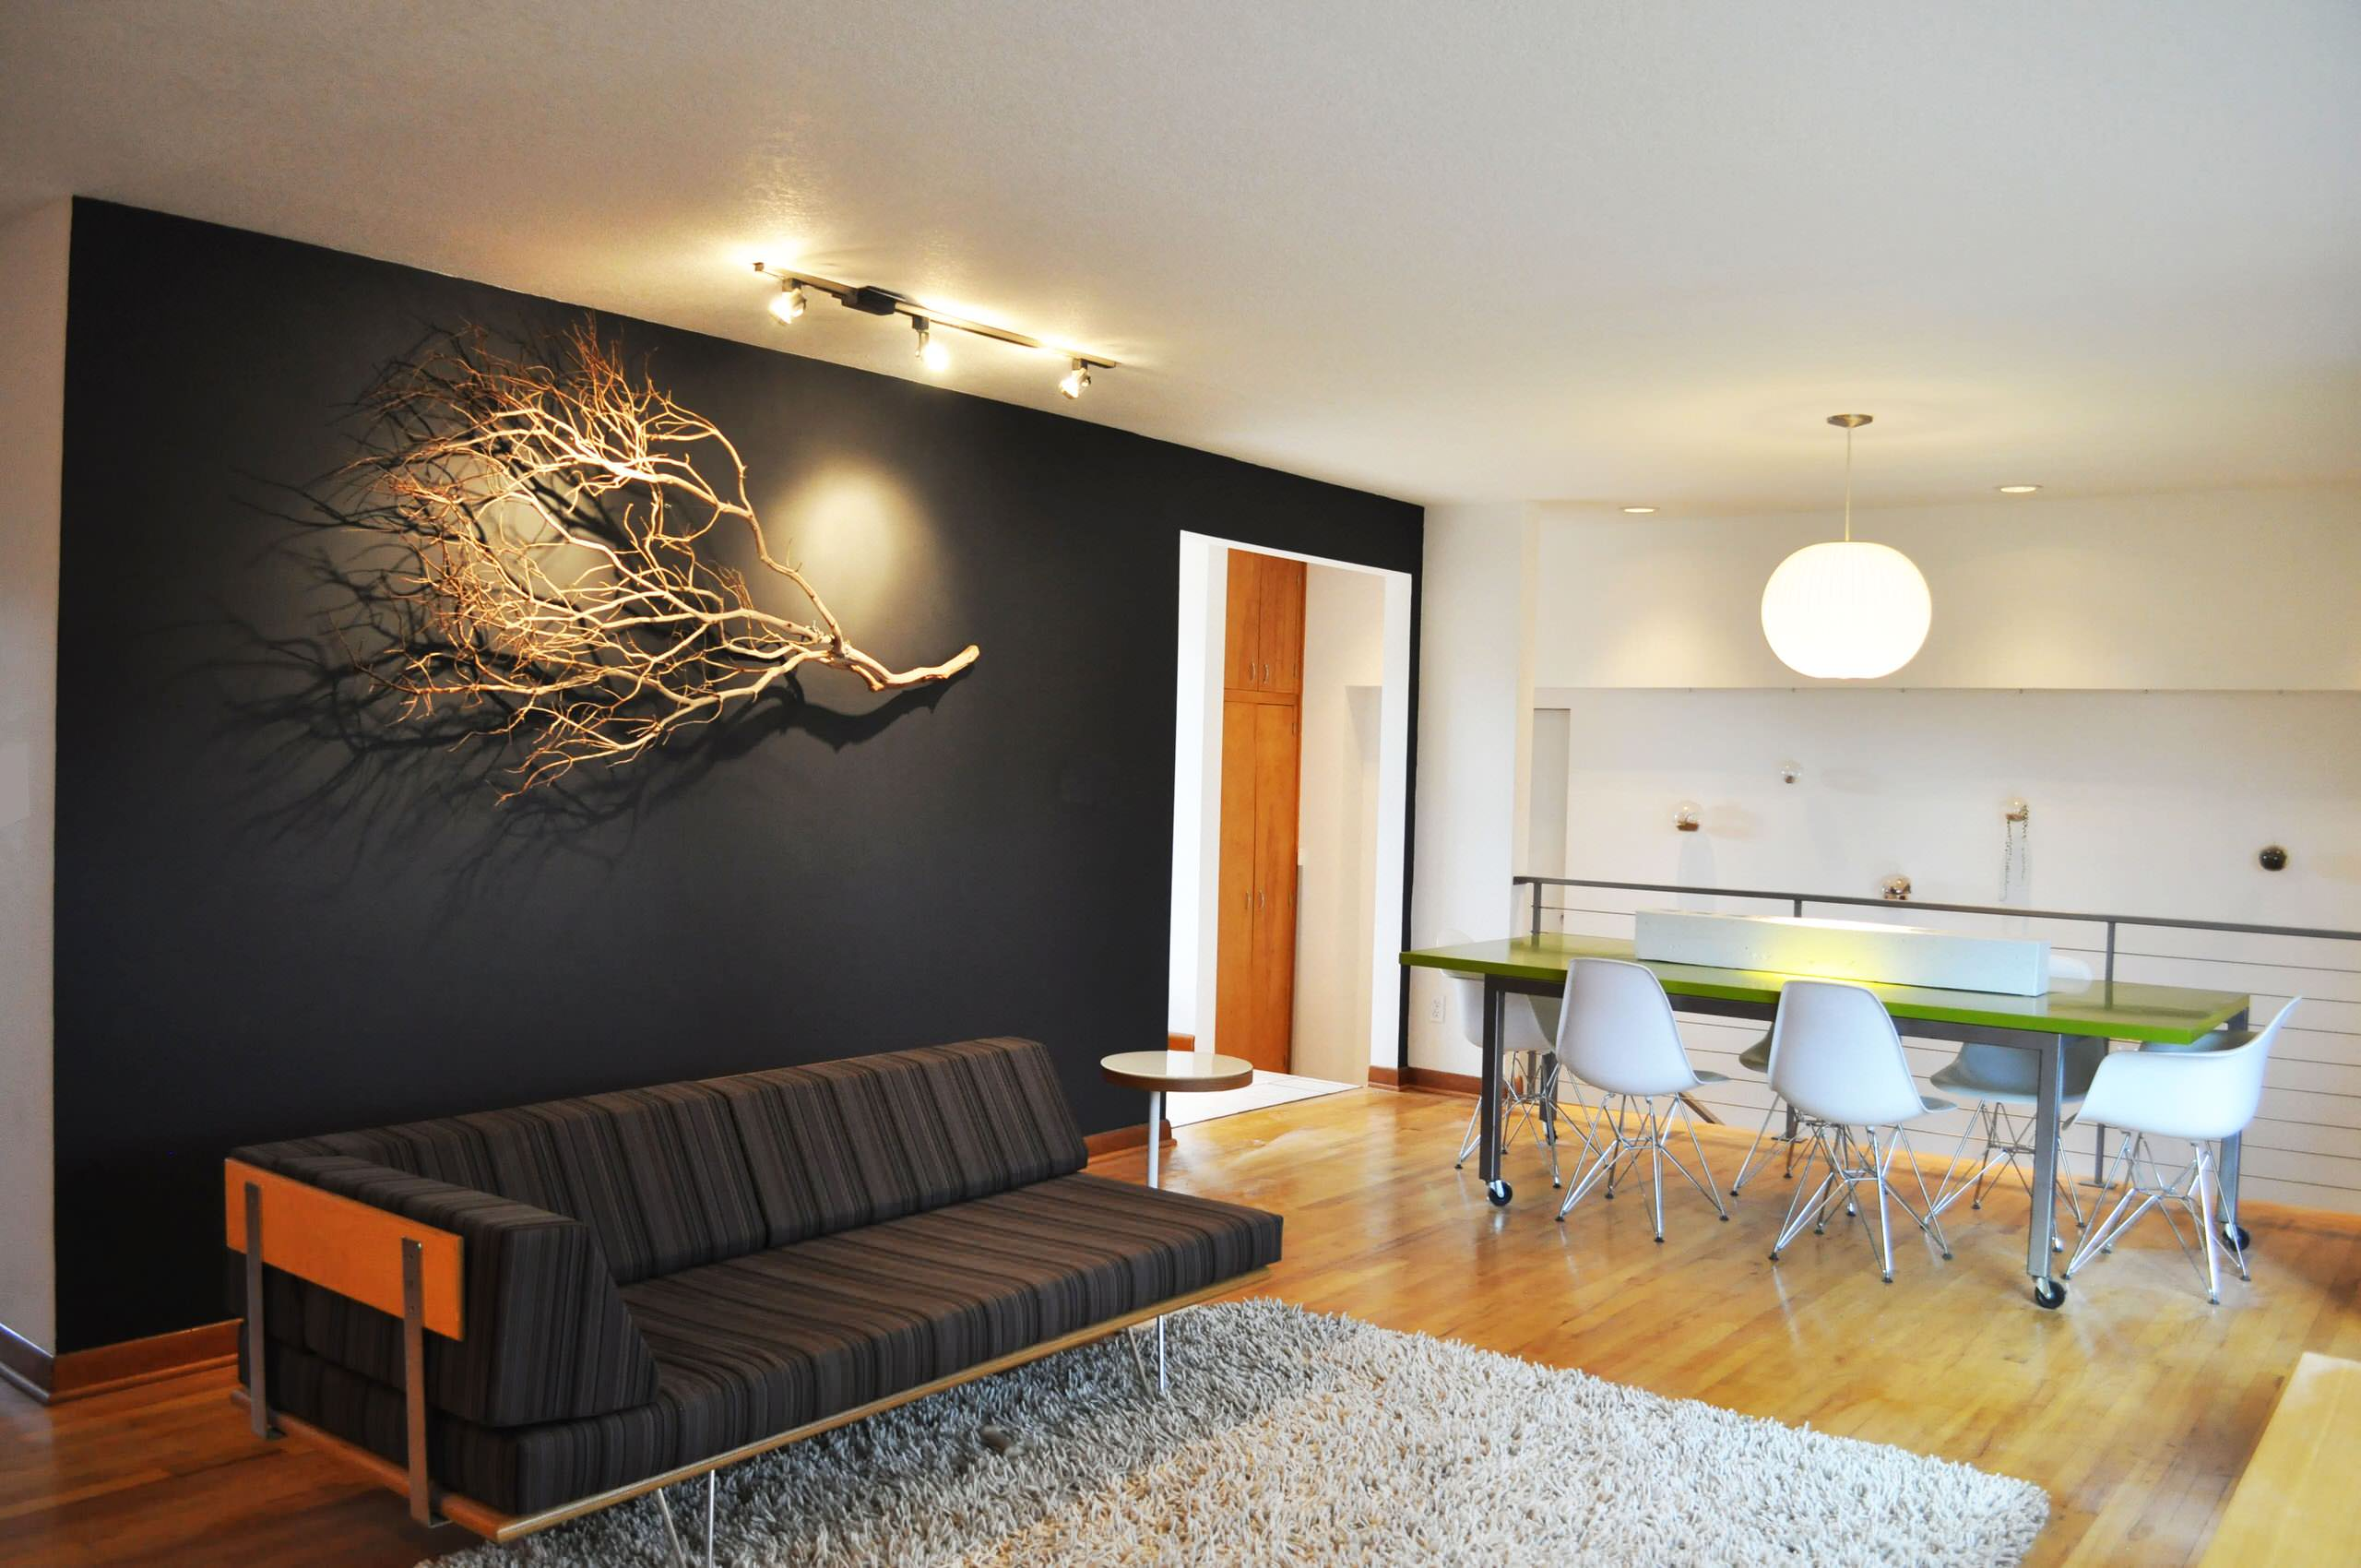 Decorating Amazing Accent Wall With Branches Plus Ceiling Lighting